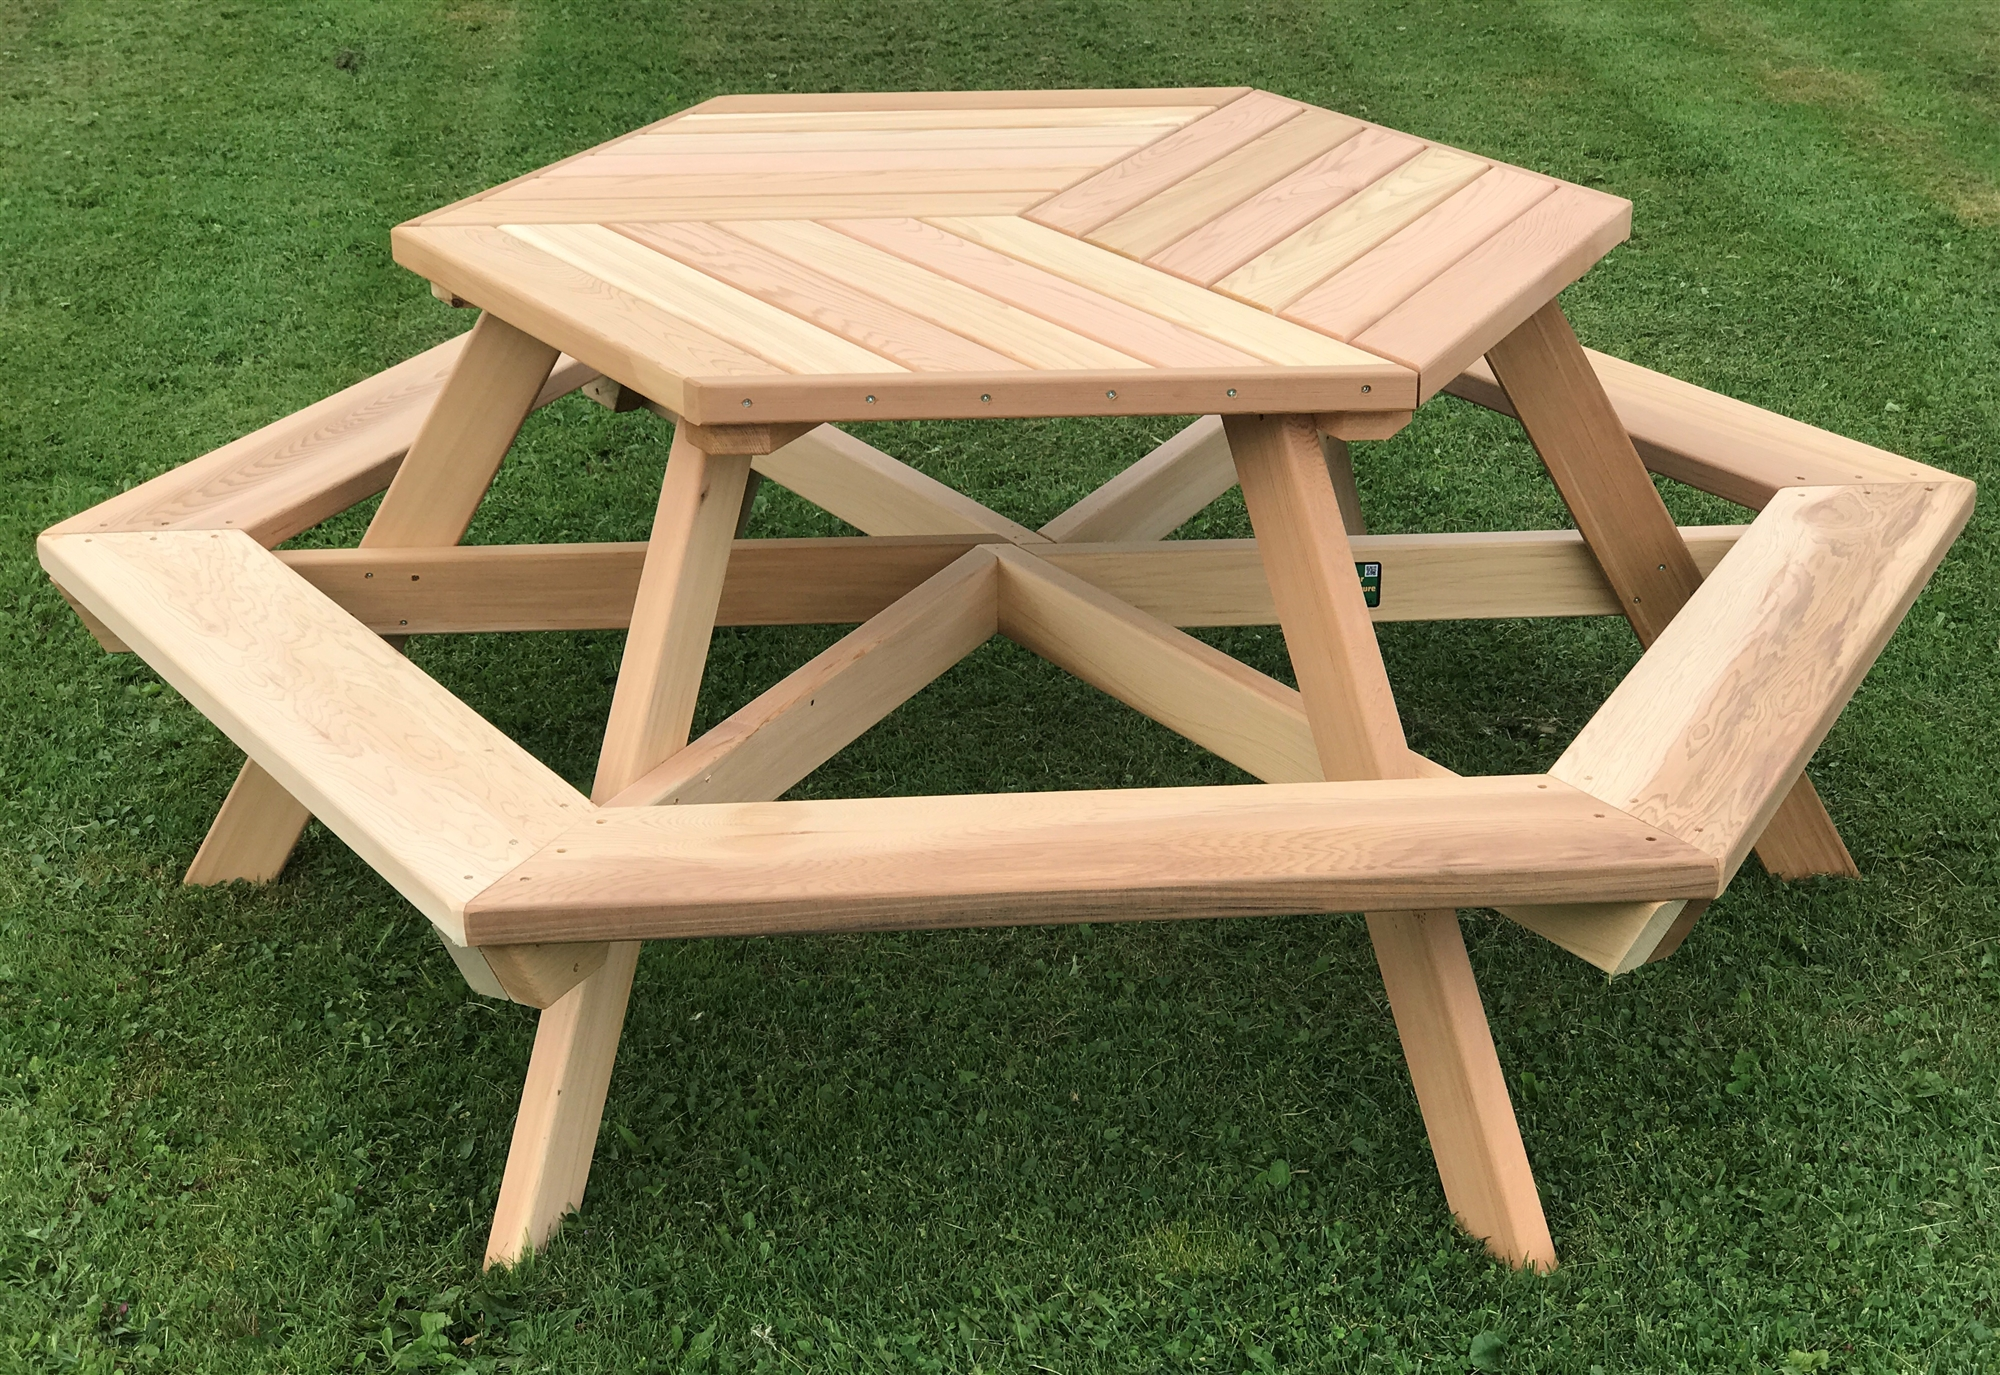 Six-Person Hexagonal Cedar Picnic Table w/ Parquet-Style Top